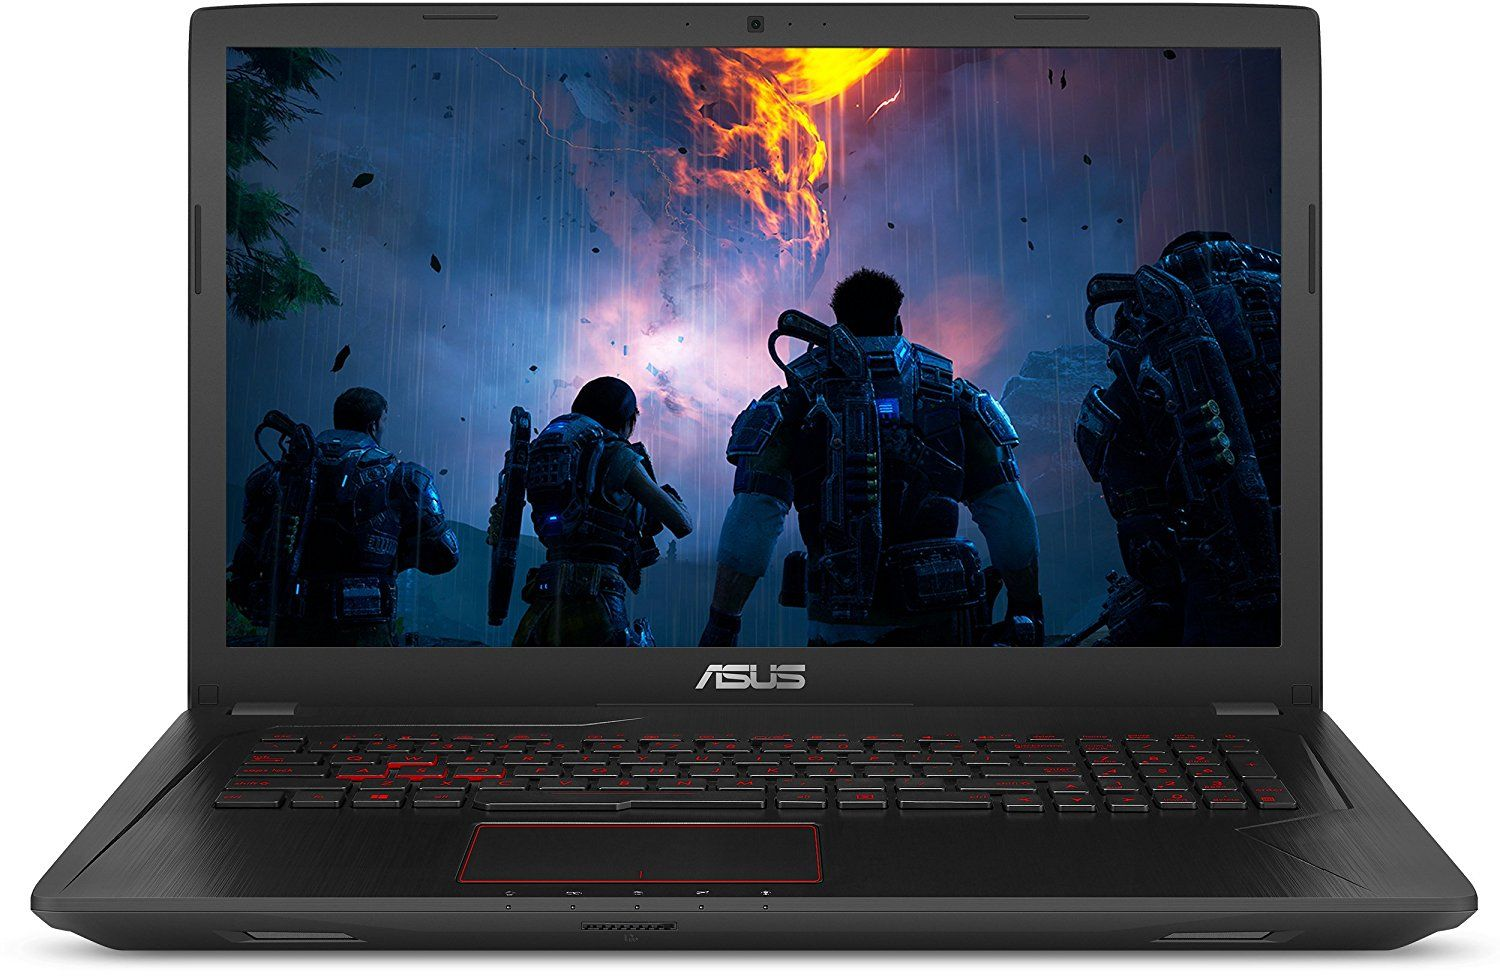 ASUS FX73VE-WH71 17.3-inch laptop